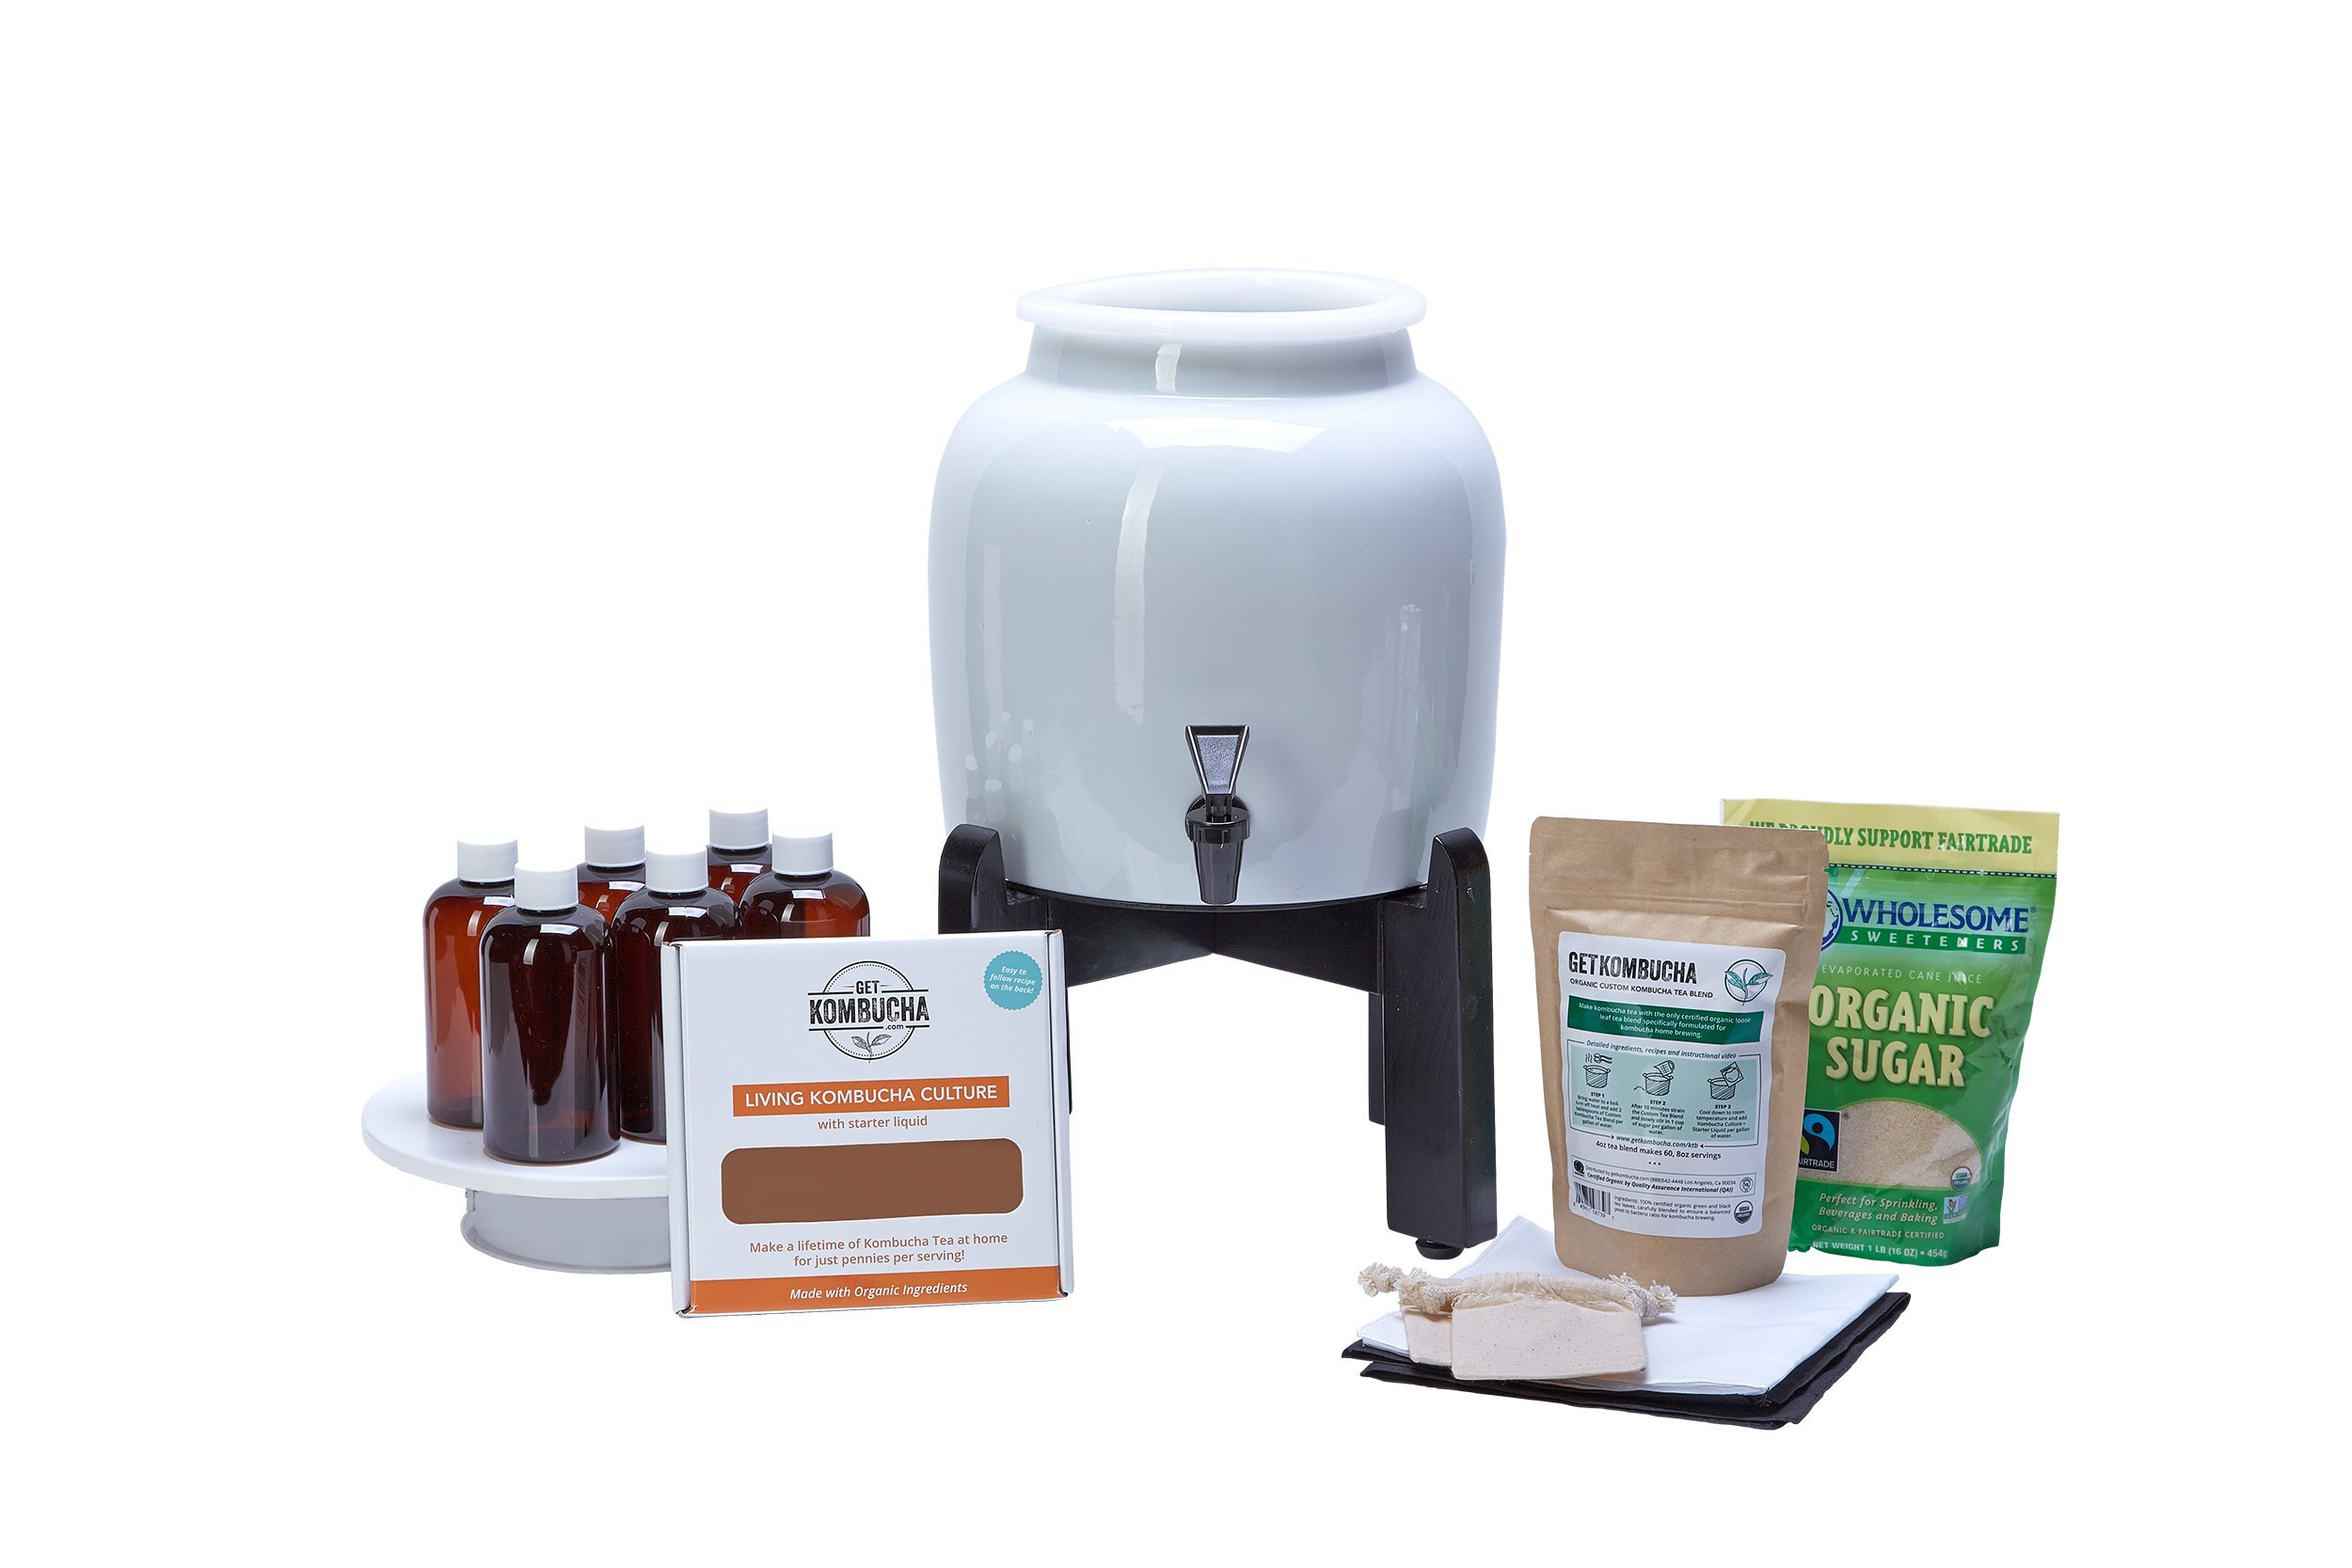 Kombucha Continuous Basic Brew Kit System - Drink Kombucha Tea On Tap (Making A Lifetime Of Home Brewed Kombucha Tea Easy For You) GetKombucha® - Includes 2.5 Gallon Porcelain Brewing Vessel w/ Handcrafted Wood Brewer Stand - Non Dehydrated HUGE Organic  by Get Kombucha (Image #1)